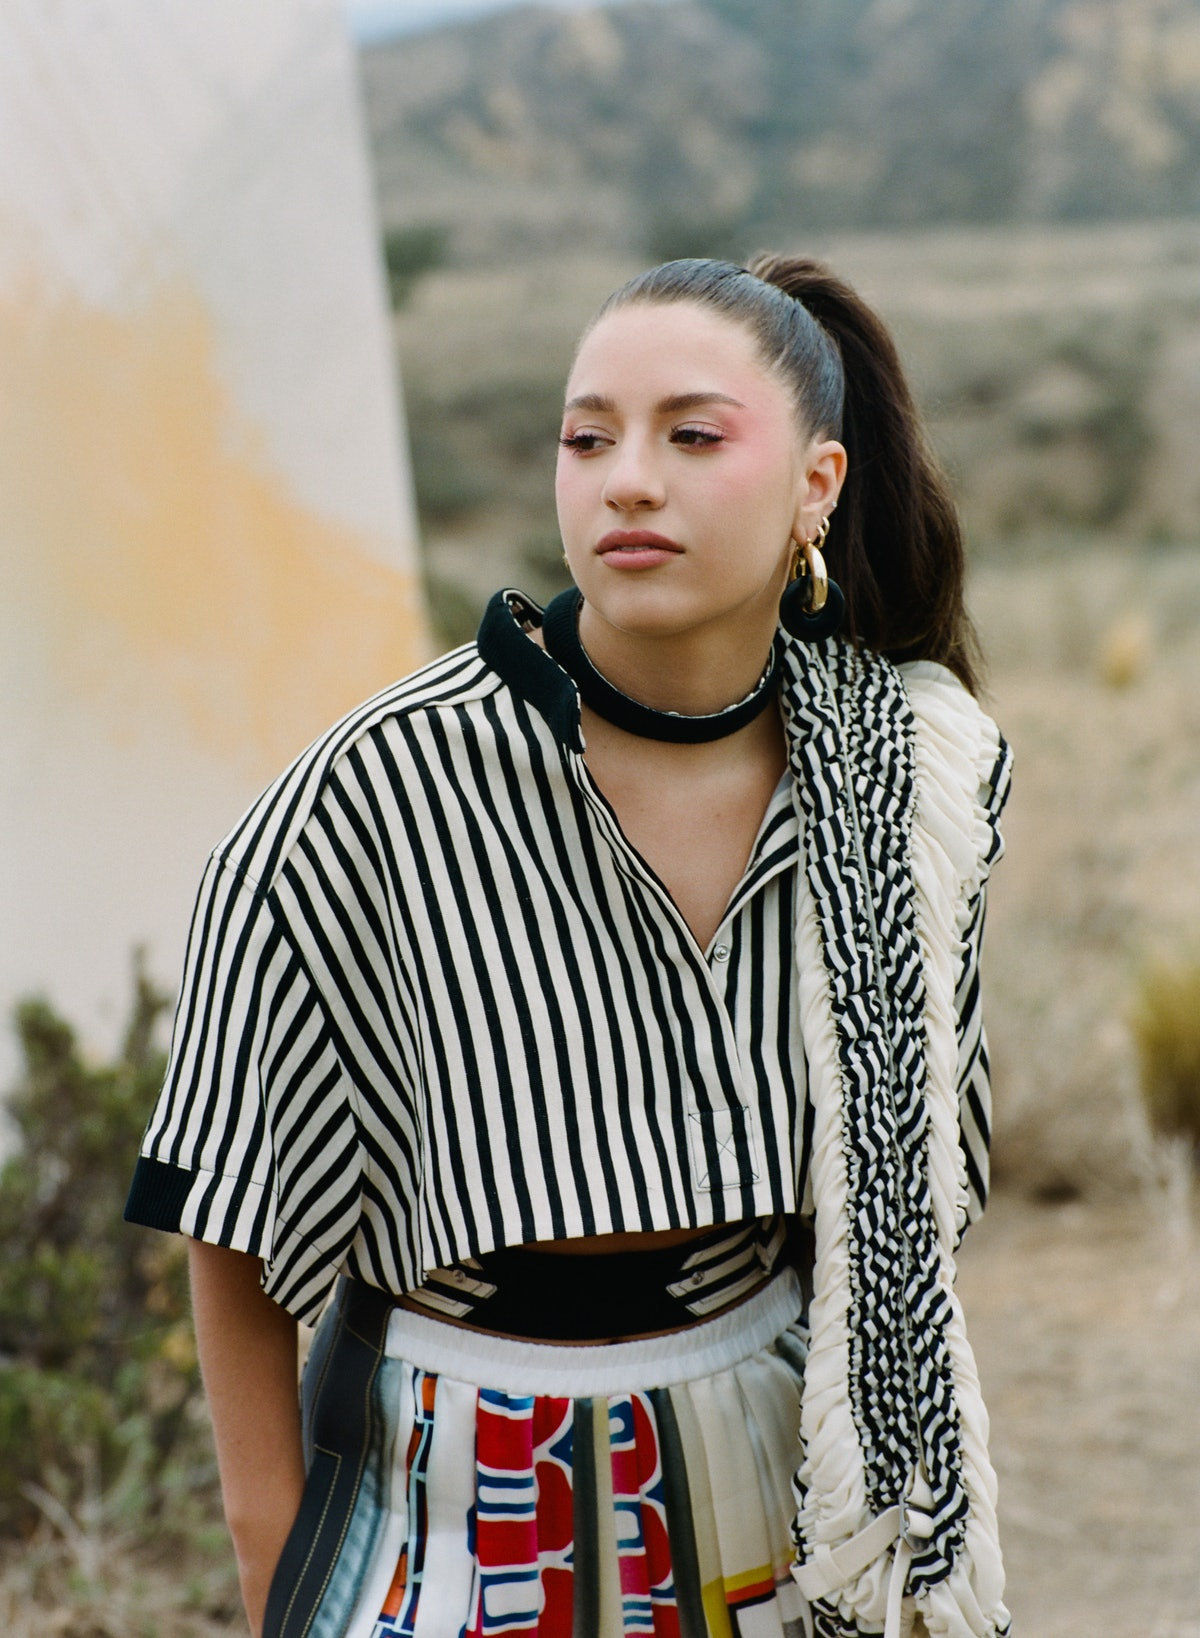 Former 'Dance Moms' star Kenzie Ziegler wears a black and white striped Louis Vuitton shirt while posing outside for Elite Daily's cover.